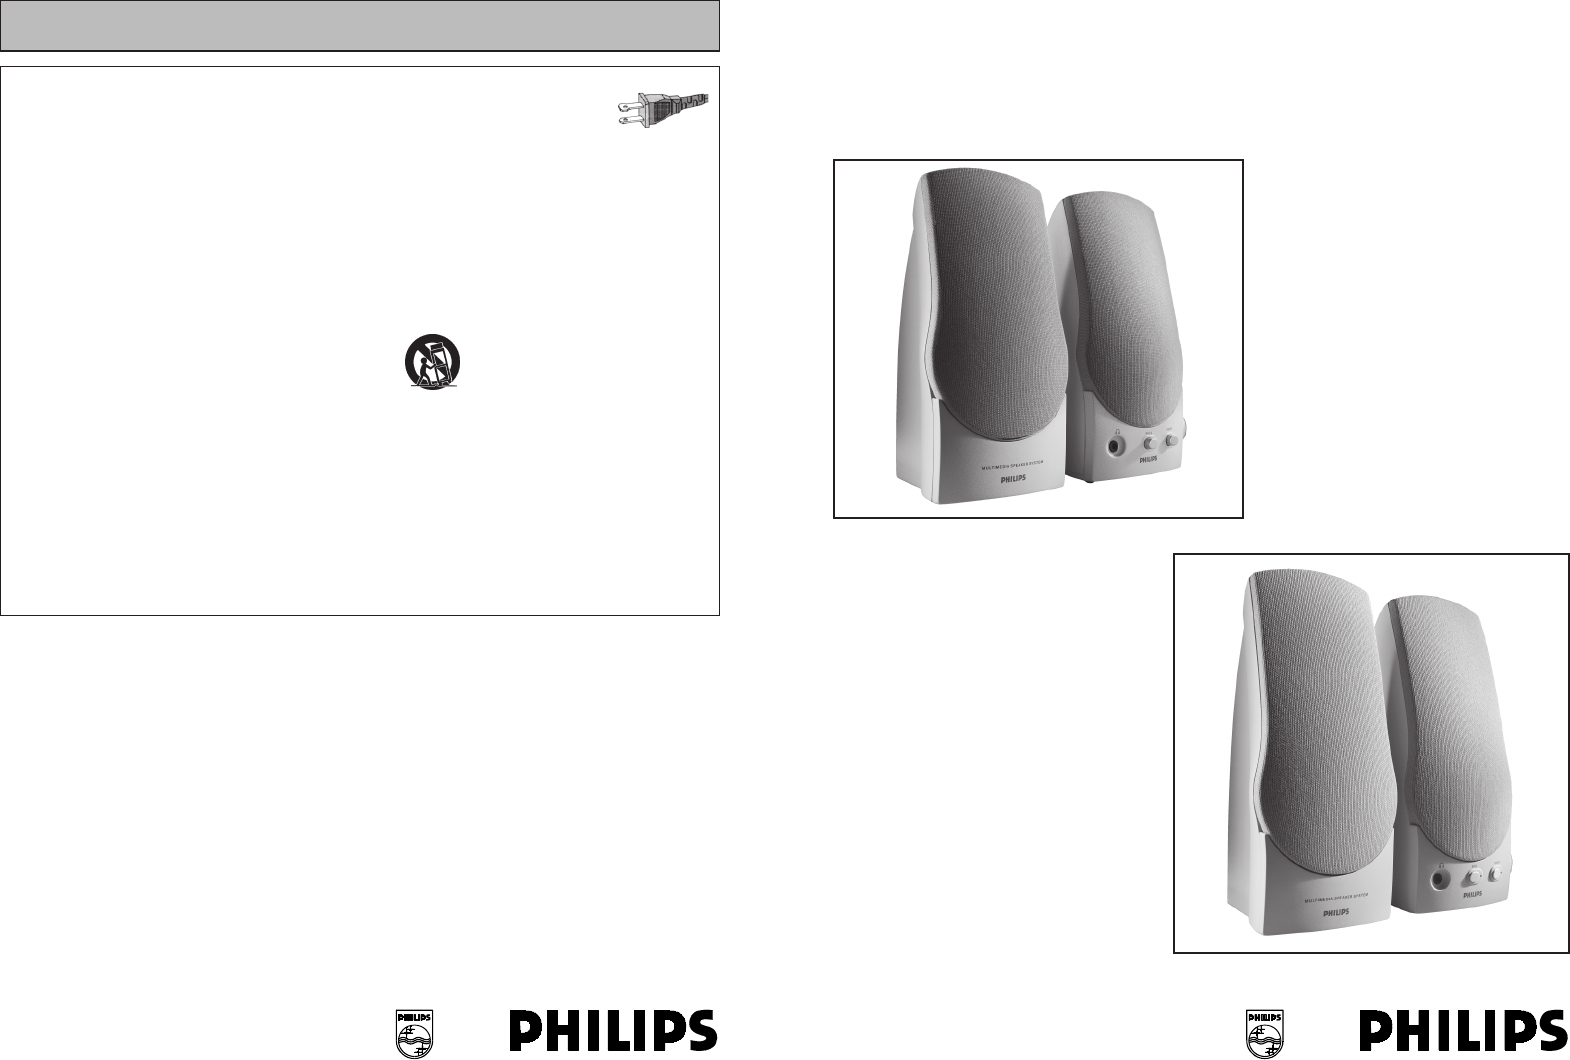 philips speaker system mms 102 user guide manualsonline com rh audio manualsonline com Philips M3001A Module Philips X2 Service Manual